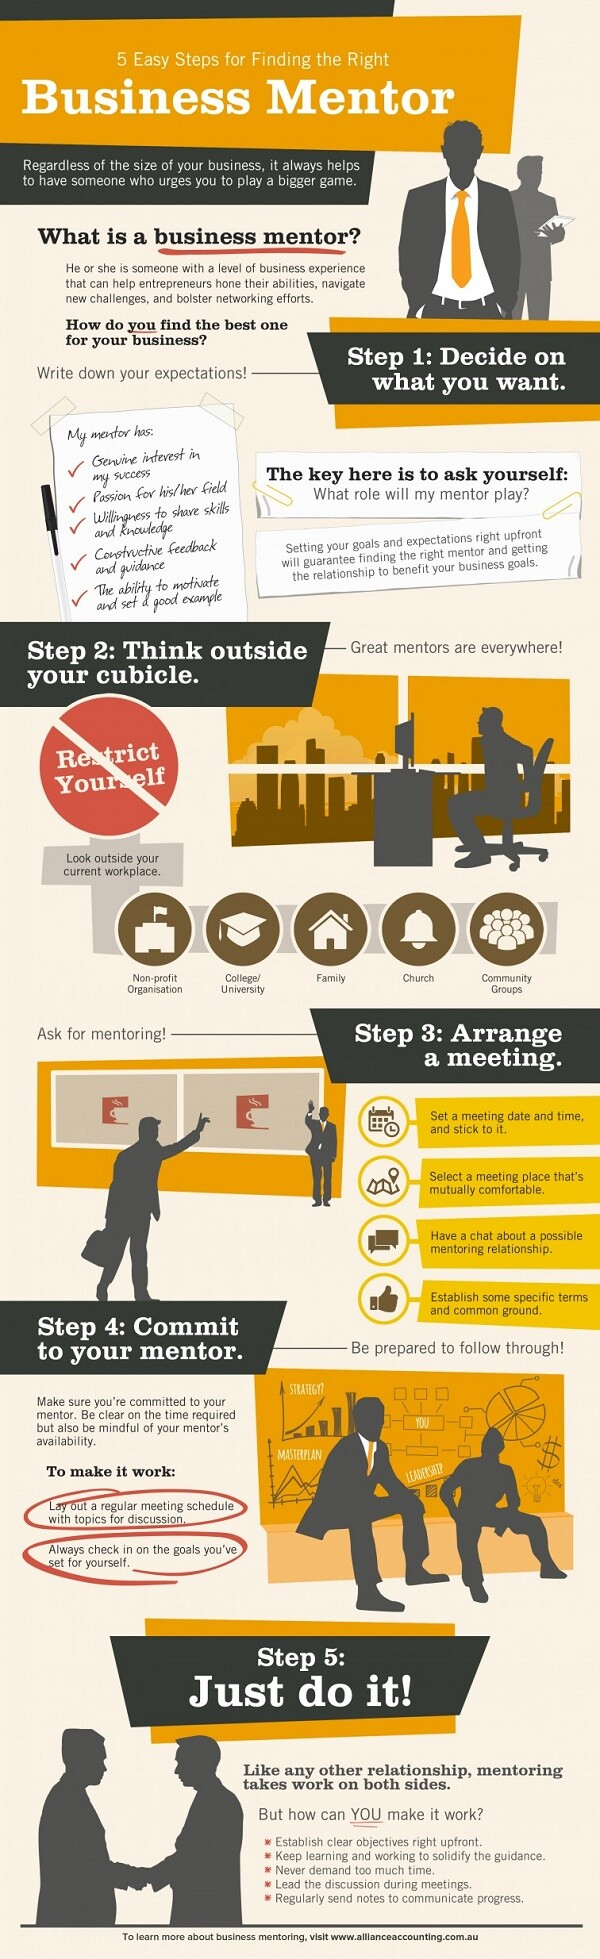 5-easy-steps-for-finding-the-right-business-mentor_53556b89ccf2e_w756